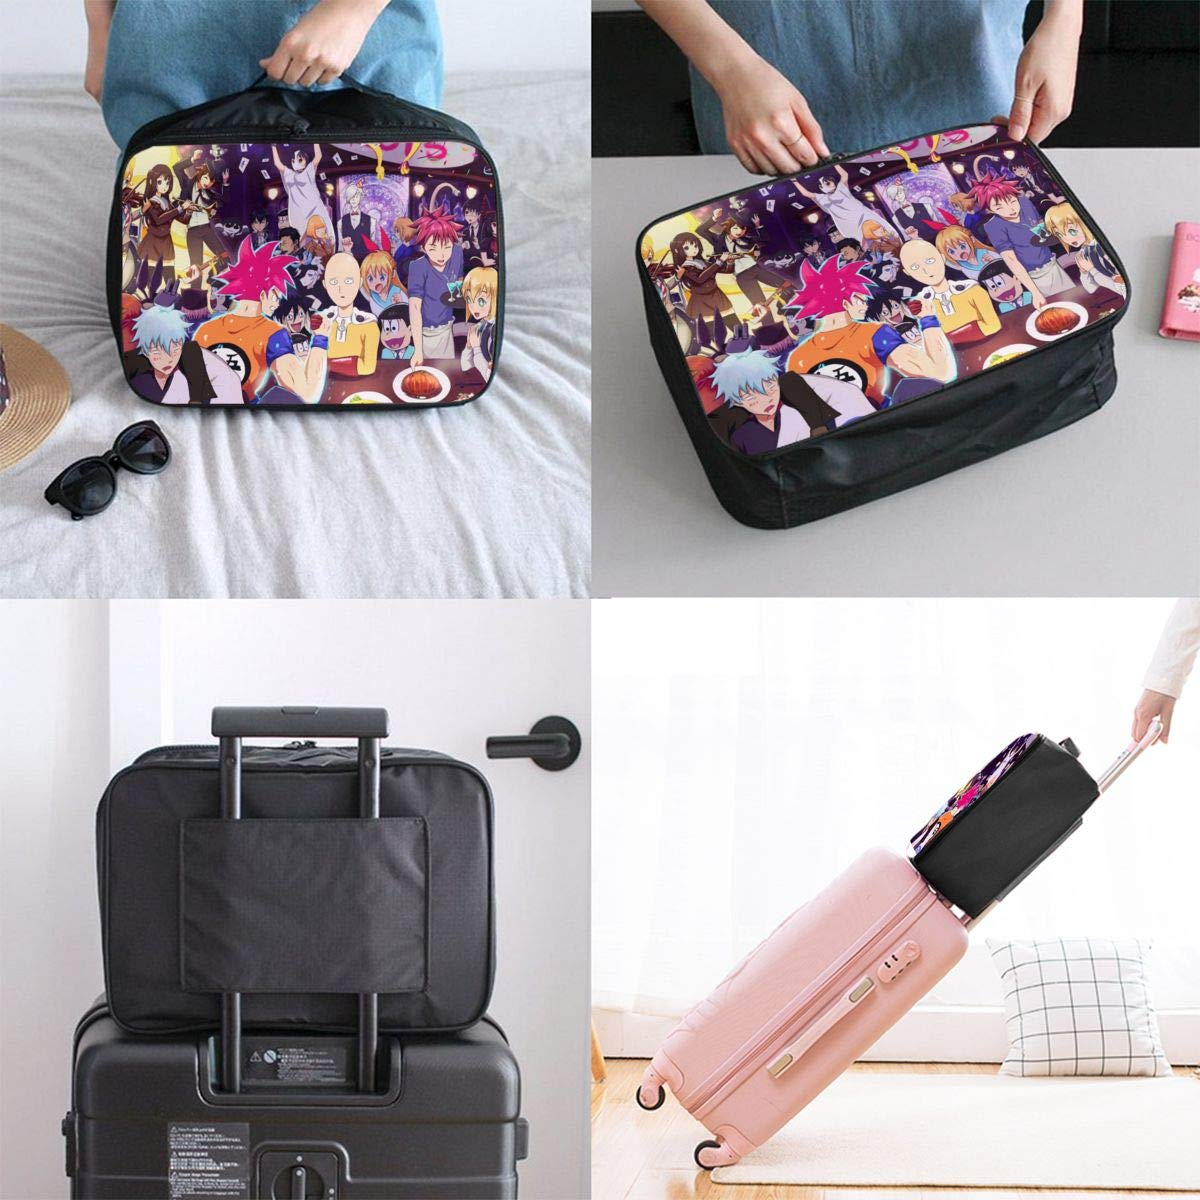 Japanese Anime Classics Collection On-e Pu-nch M-an Customize Casual Portable Travel Bag Suitcase Storage Bag Luggage Packing Tote Bag Trolley Bag